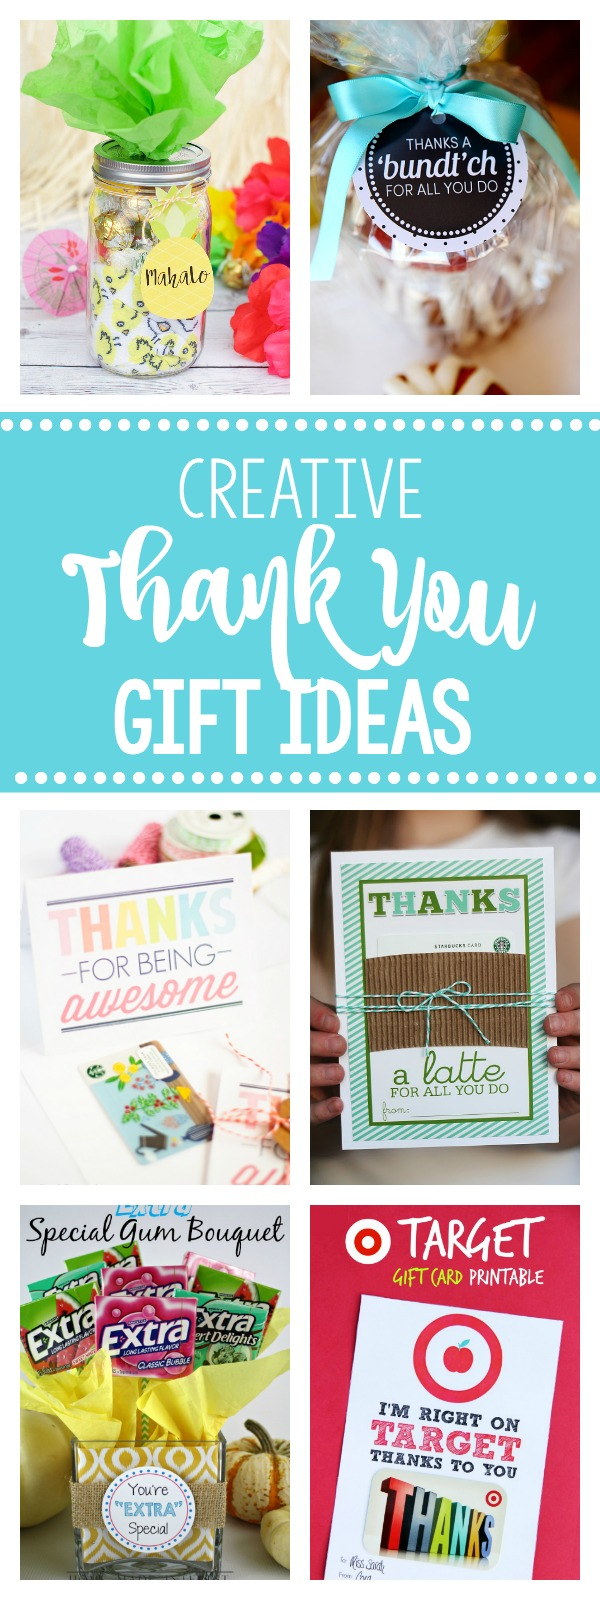 image regarding Thank You for Being a Great Teacher Printable referred to as 25 Artistic One of a kind Thank Oneself Items Exciting-Squared